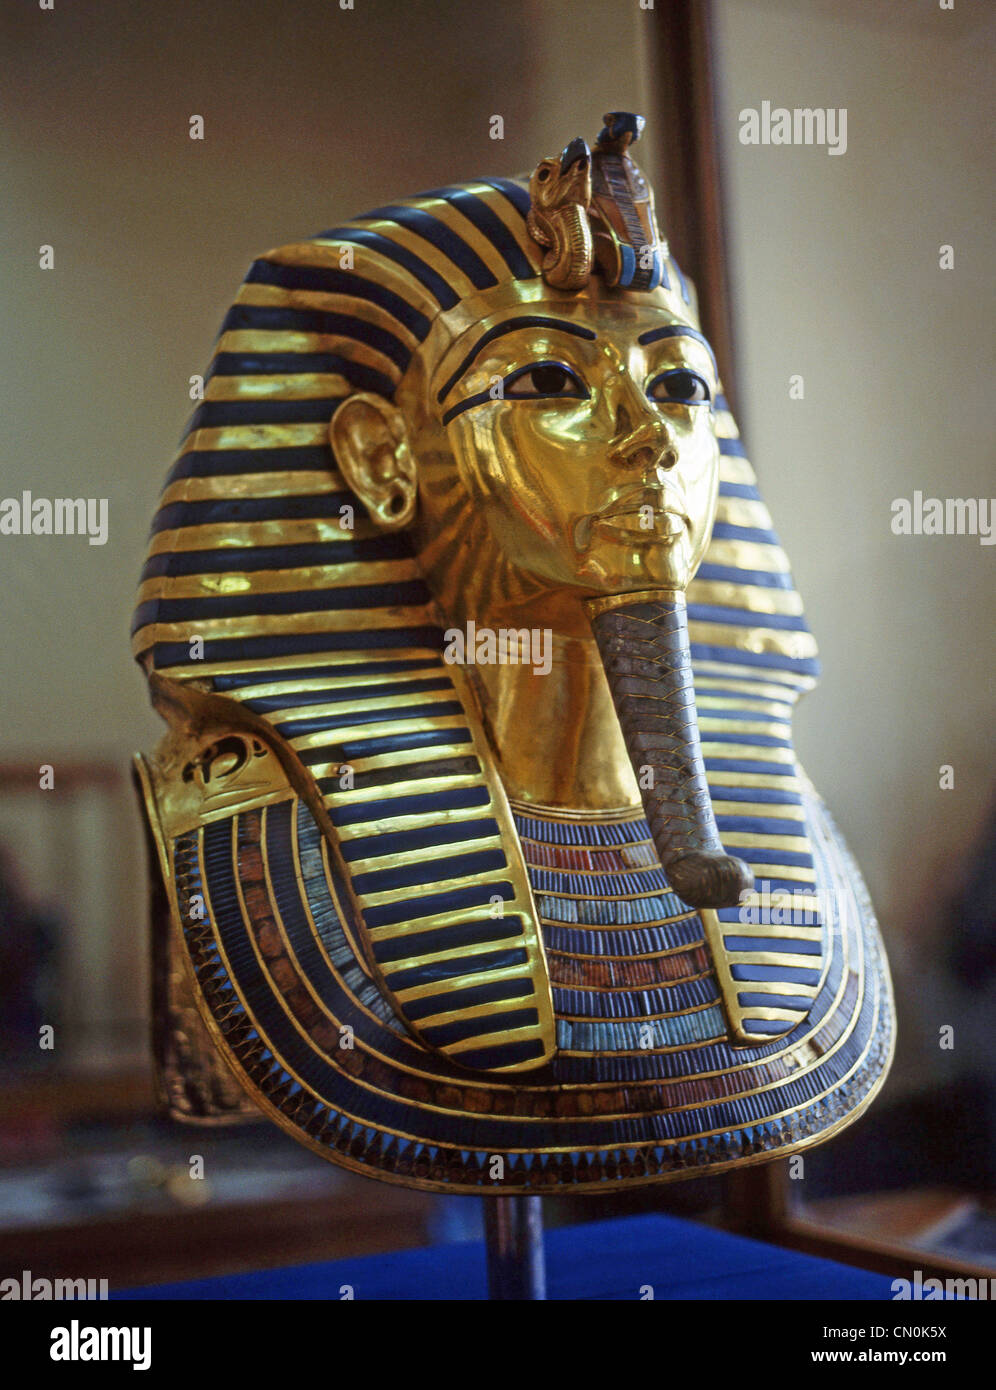 The Gold Mask of Tutankhamun in The Egyptian Museum, Cairo, Cairo Governorate, Republic of Egypt - Stock Image